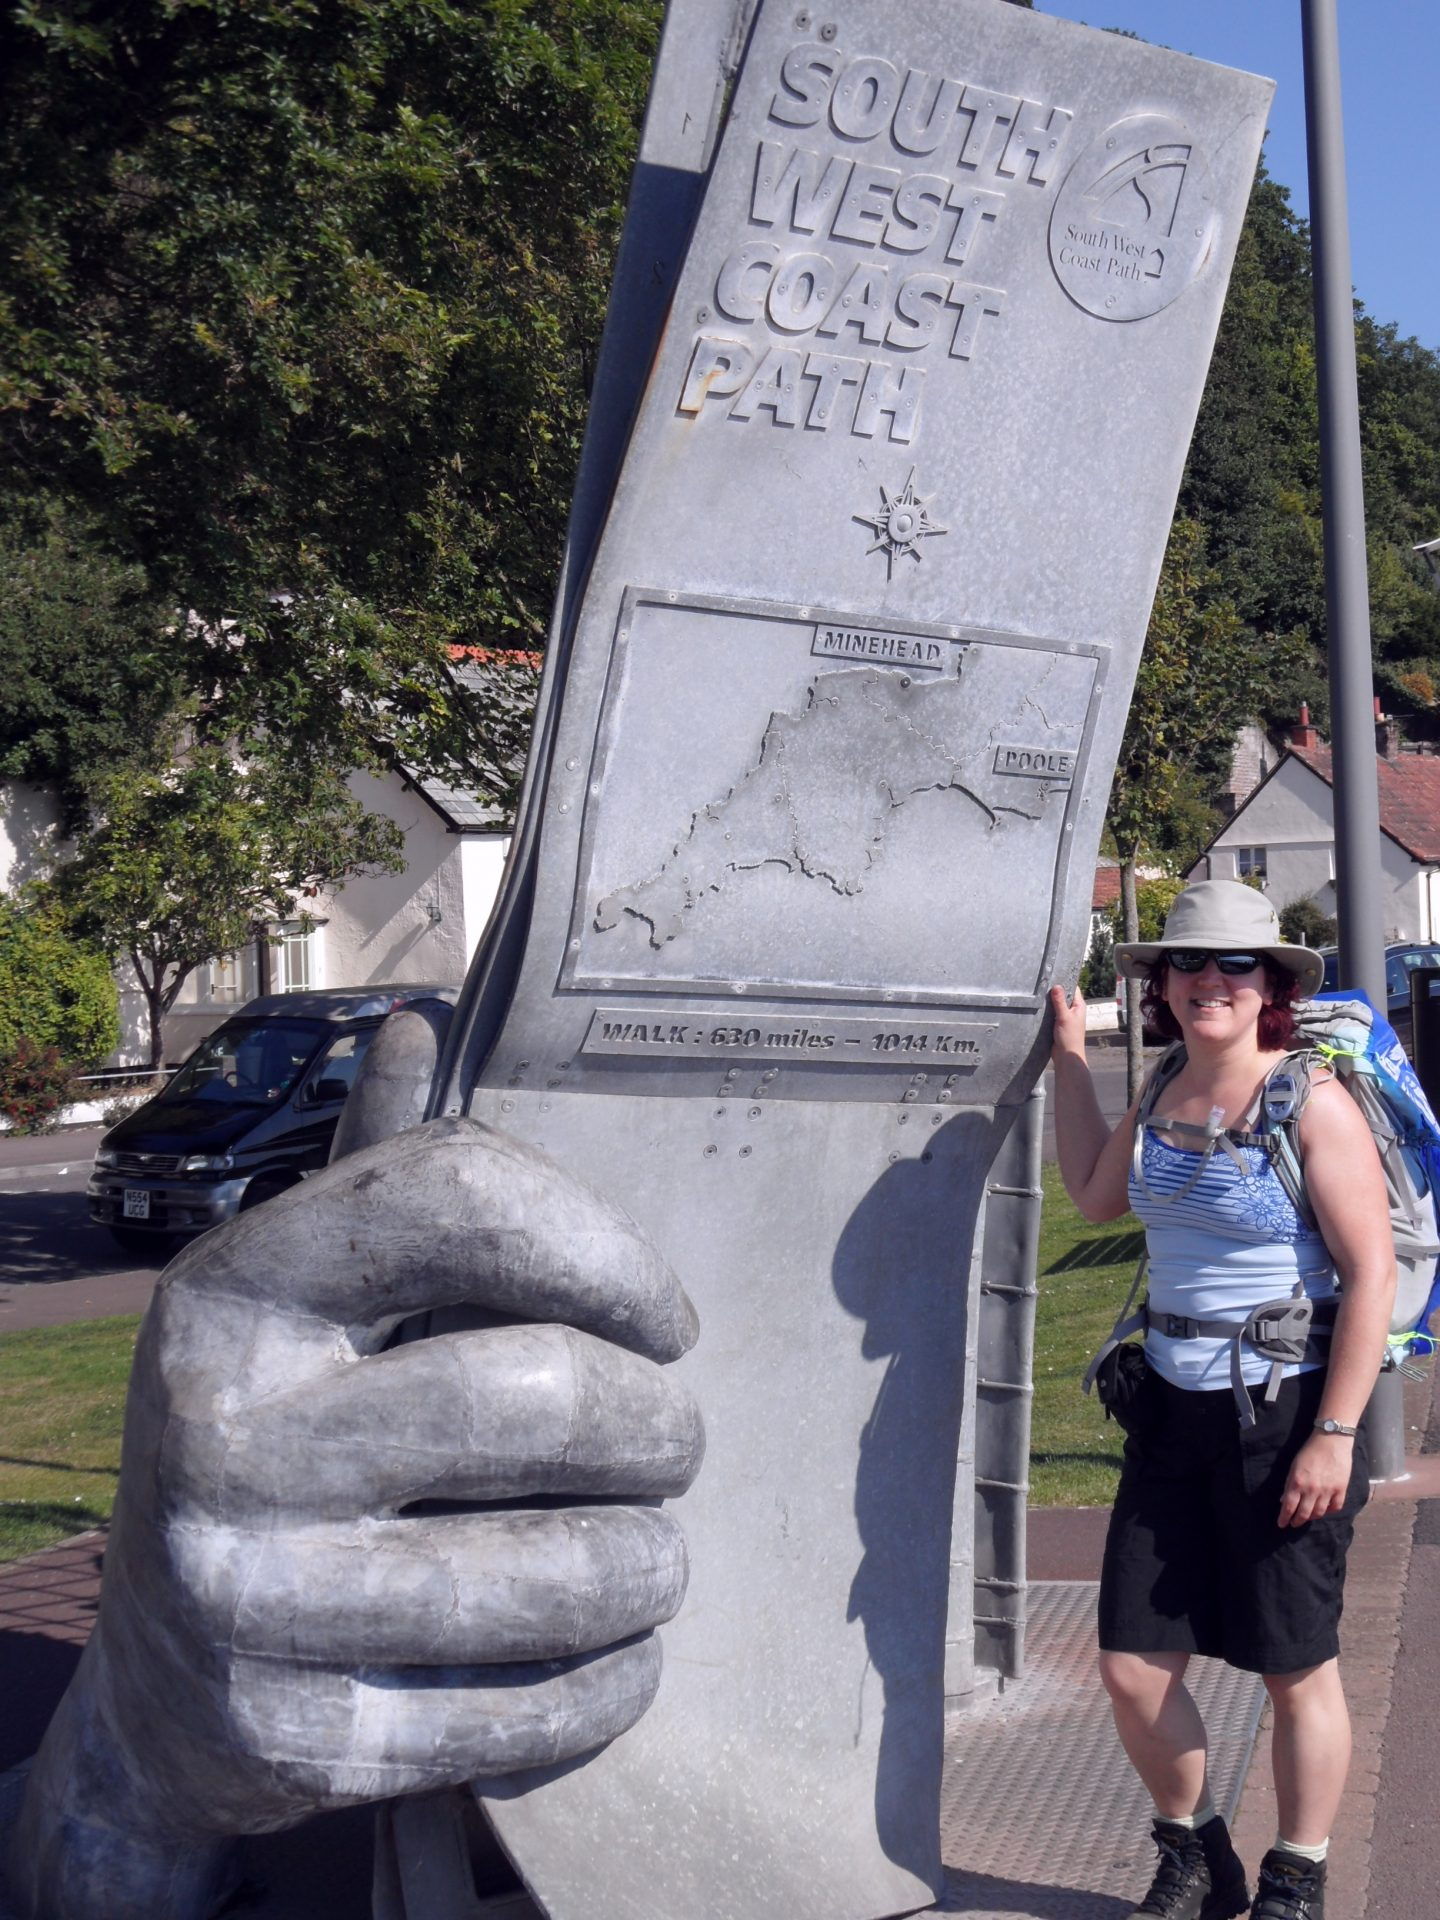 Zoe is wearing black shorts, a blue cami vest and a Tilley adventure hat and sunglasses. She stands next to a large sculpture of oversized hands, holding a partly unfolded map that is double her height. It has the words at the top, South West Coast Path.